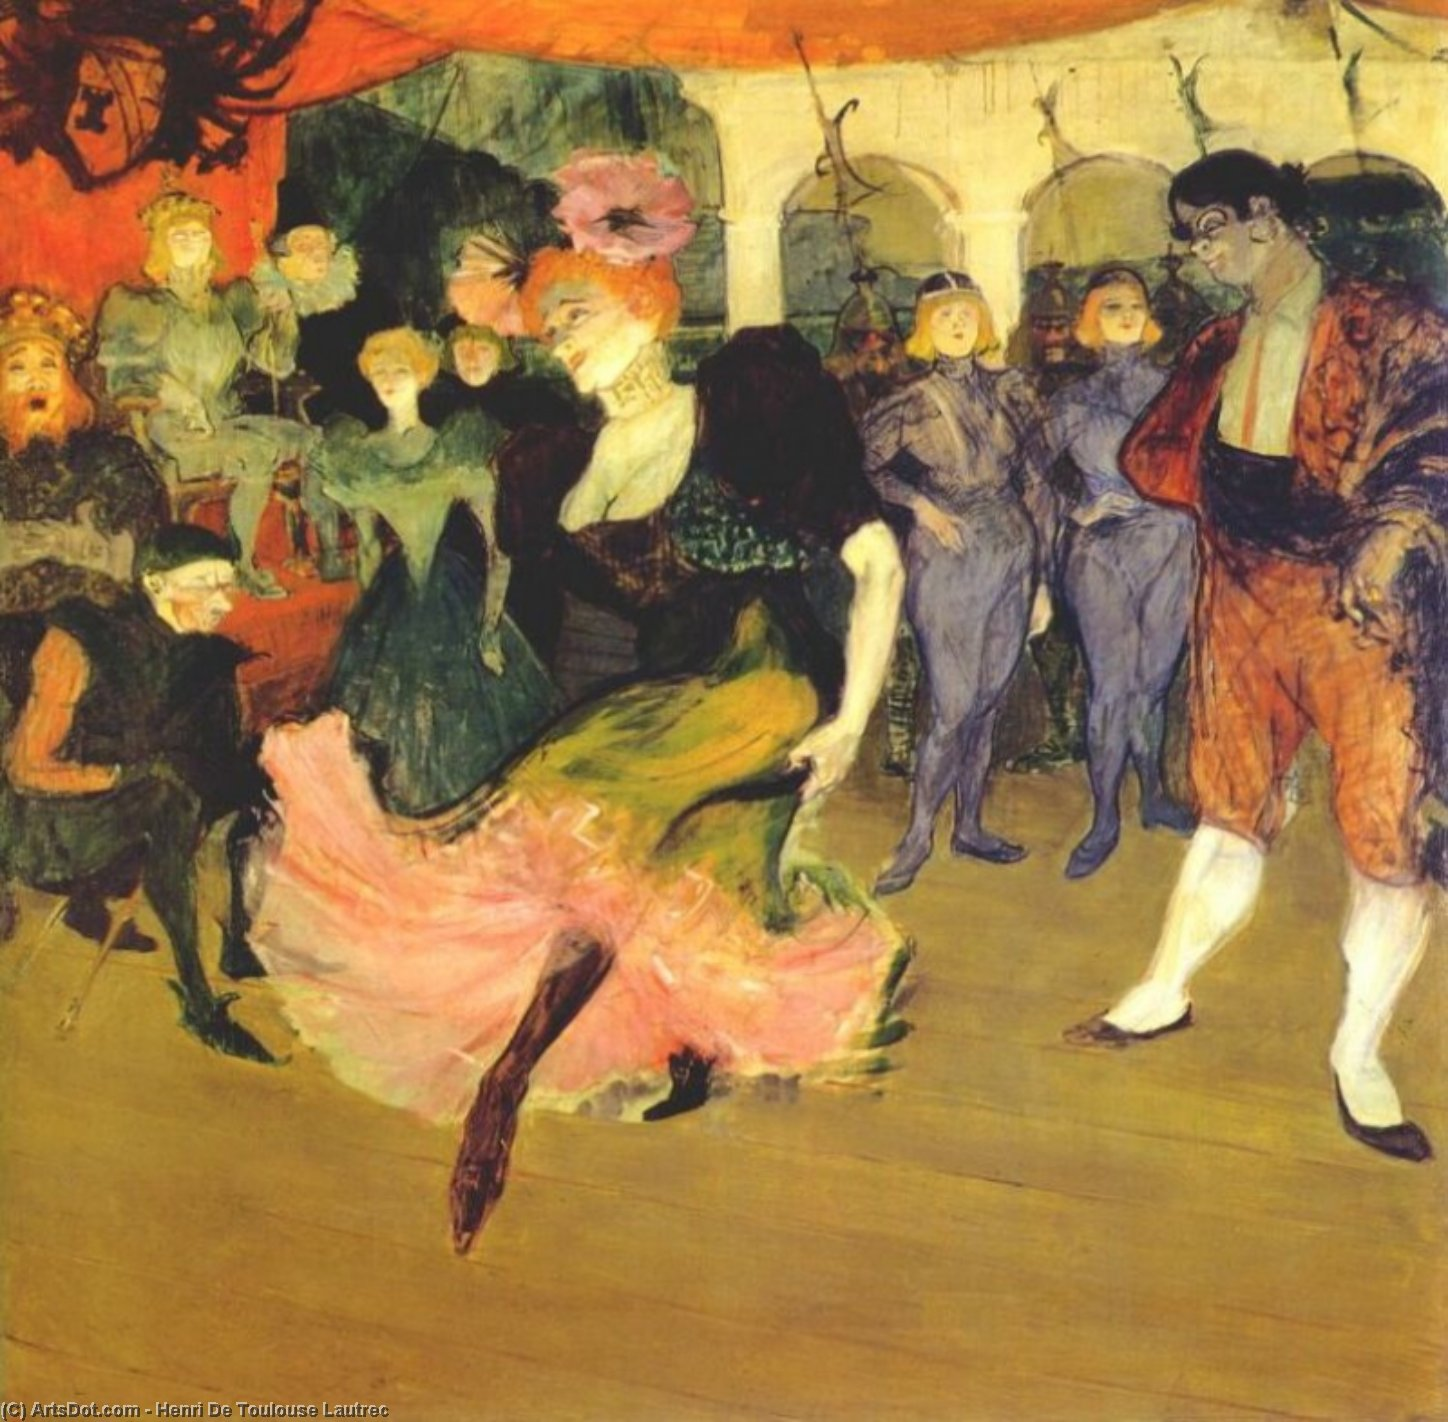 Marcelle Lender Dancing the Bolero in Chilperic, Oil by Henri De Toulouse Lautrec (1864-1901, France)